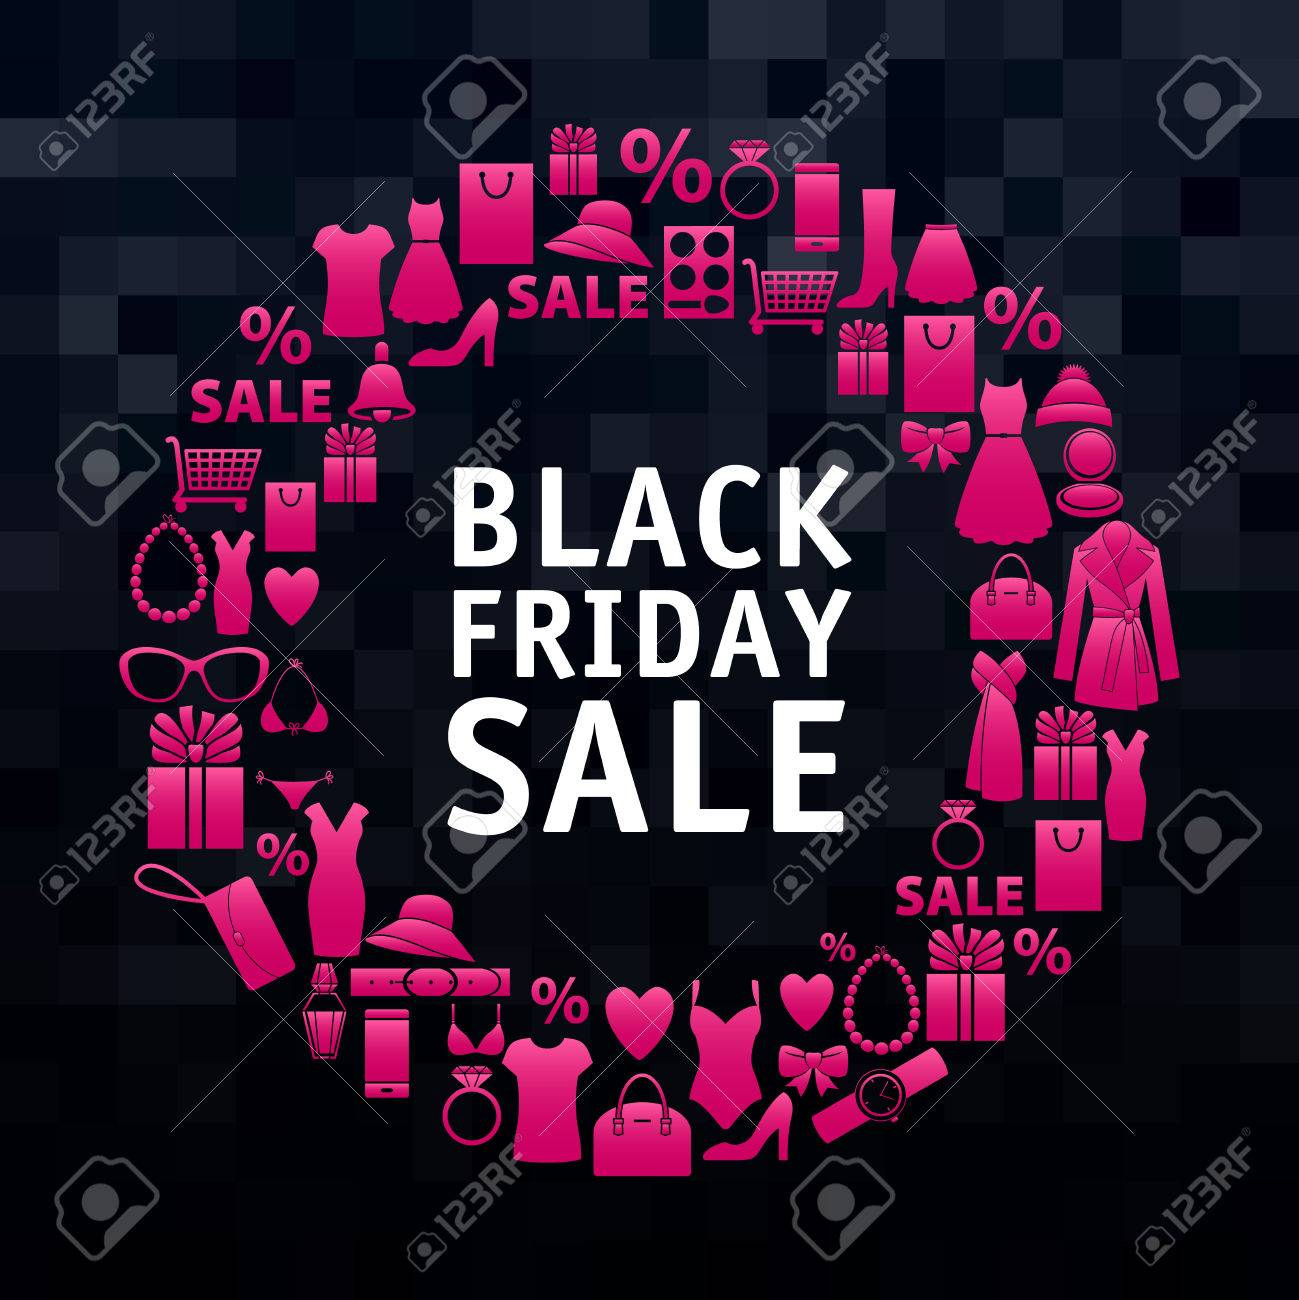 Black Friday Sale Wreath Of Pink Shopping Icons Clothes And Royalty Free Cliparts Vectors And Stock Illustration Image 48041360